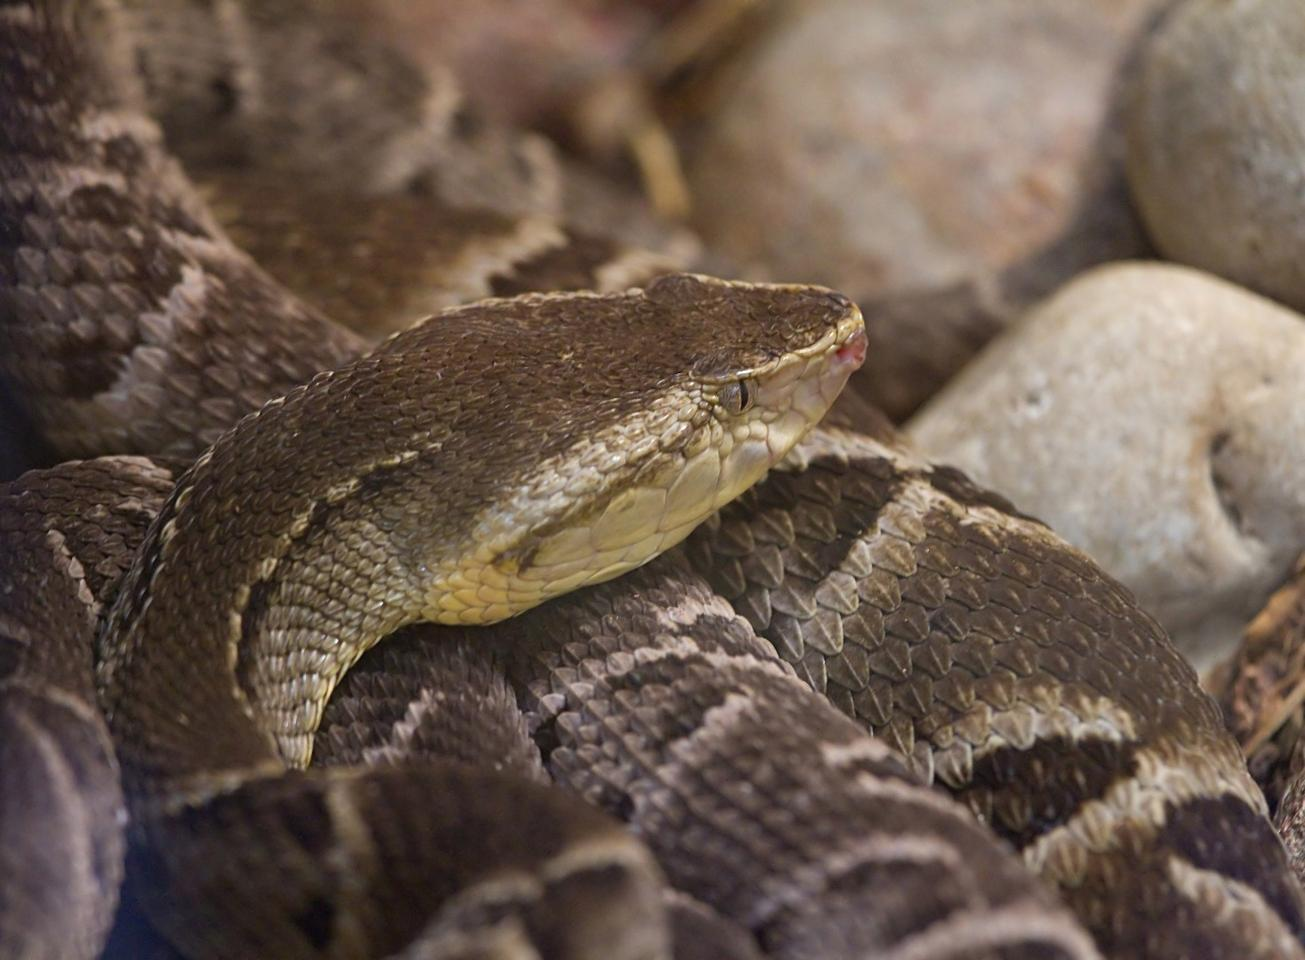 A new hydrogel inspired by the venom of a South American viper has been shown in the lab to stop bleeding within six seconds